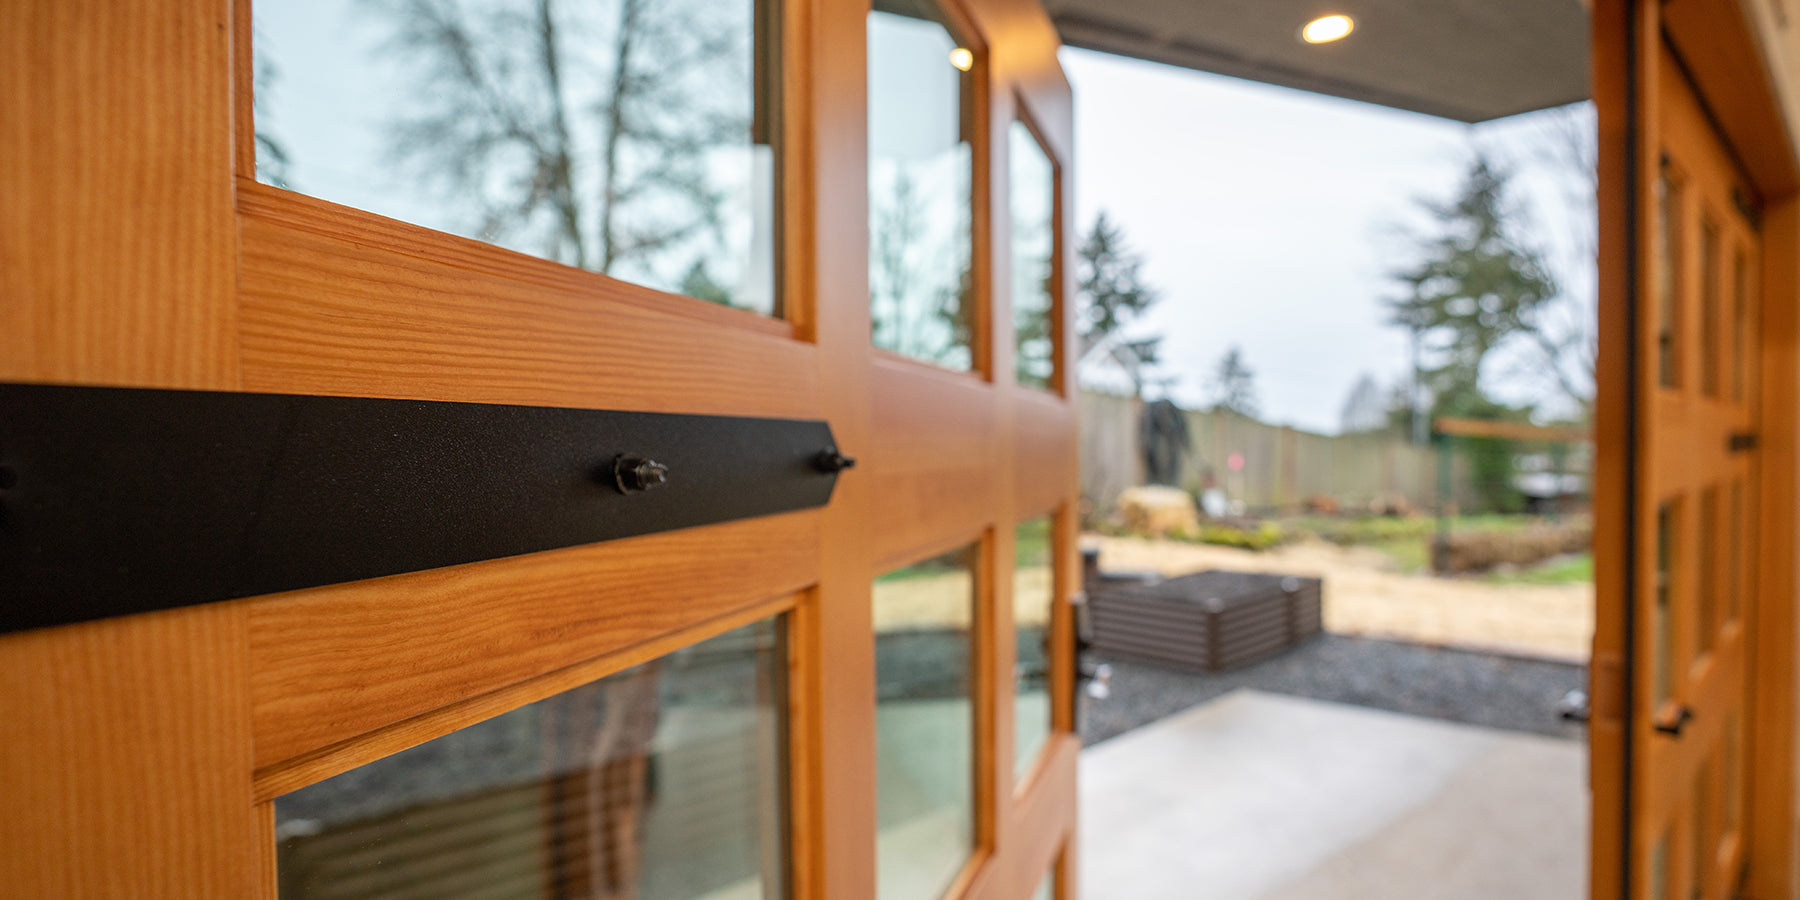 McIntyre Furniture woodshop exterior view featuring wood grain and strap hinges of the Douglas Fir Carriage Doors.